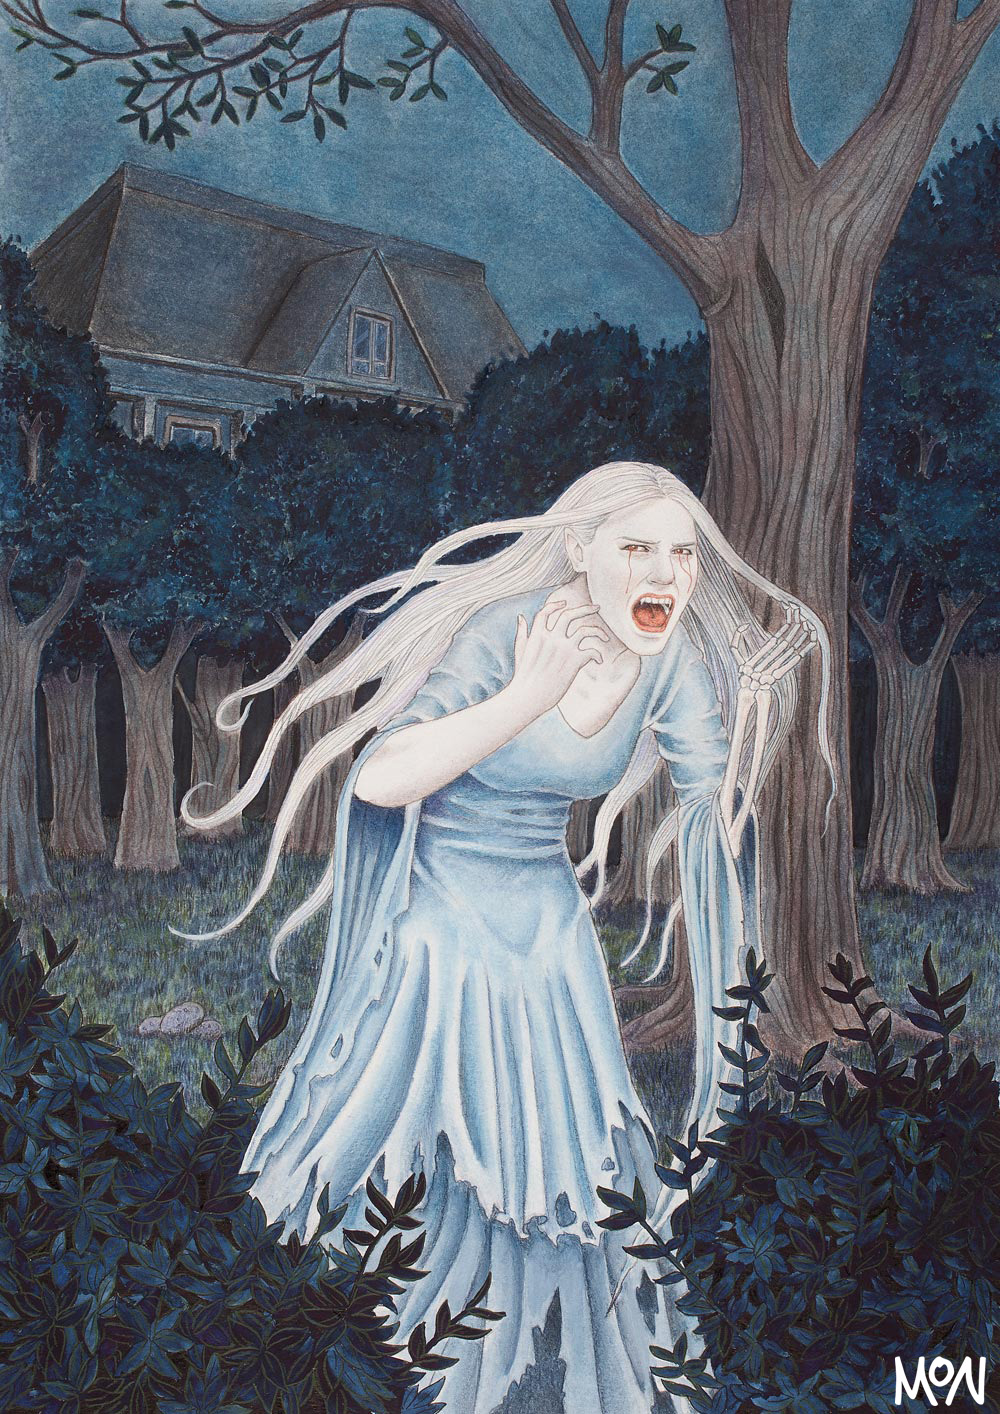 Fairy Sightings Archives - Page 20 of 25 - Fairyist